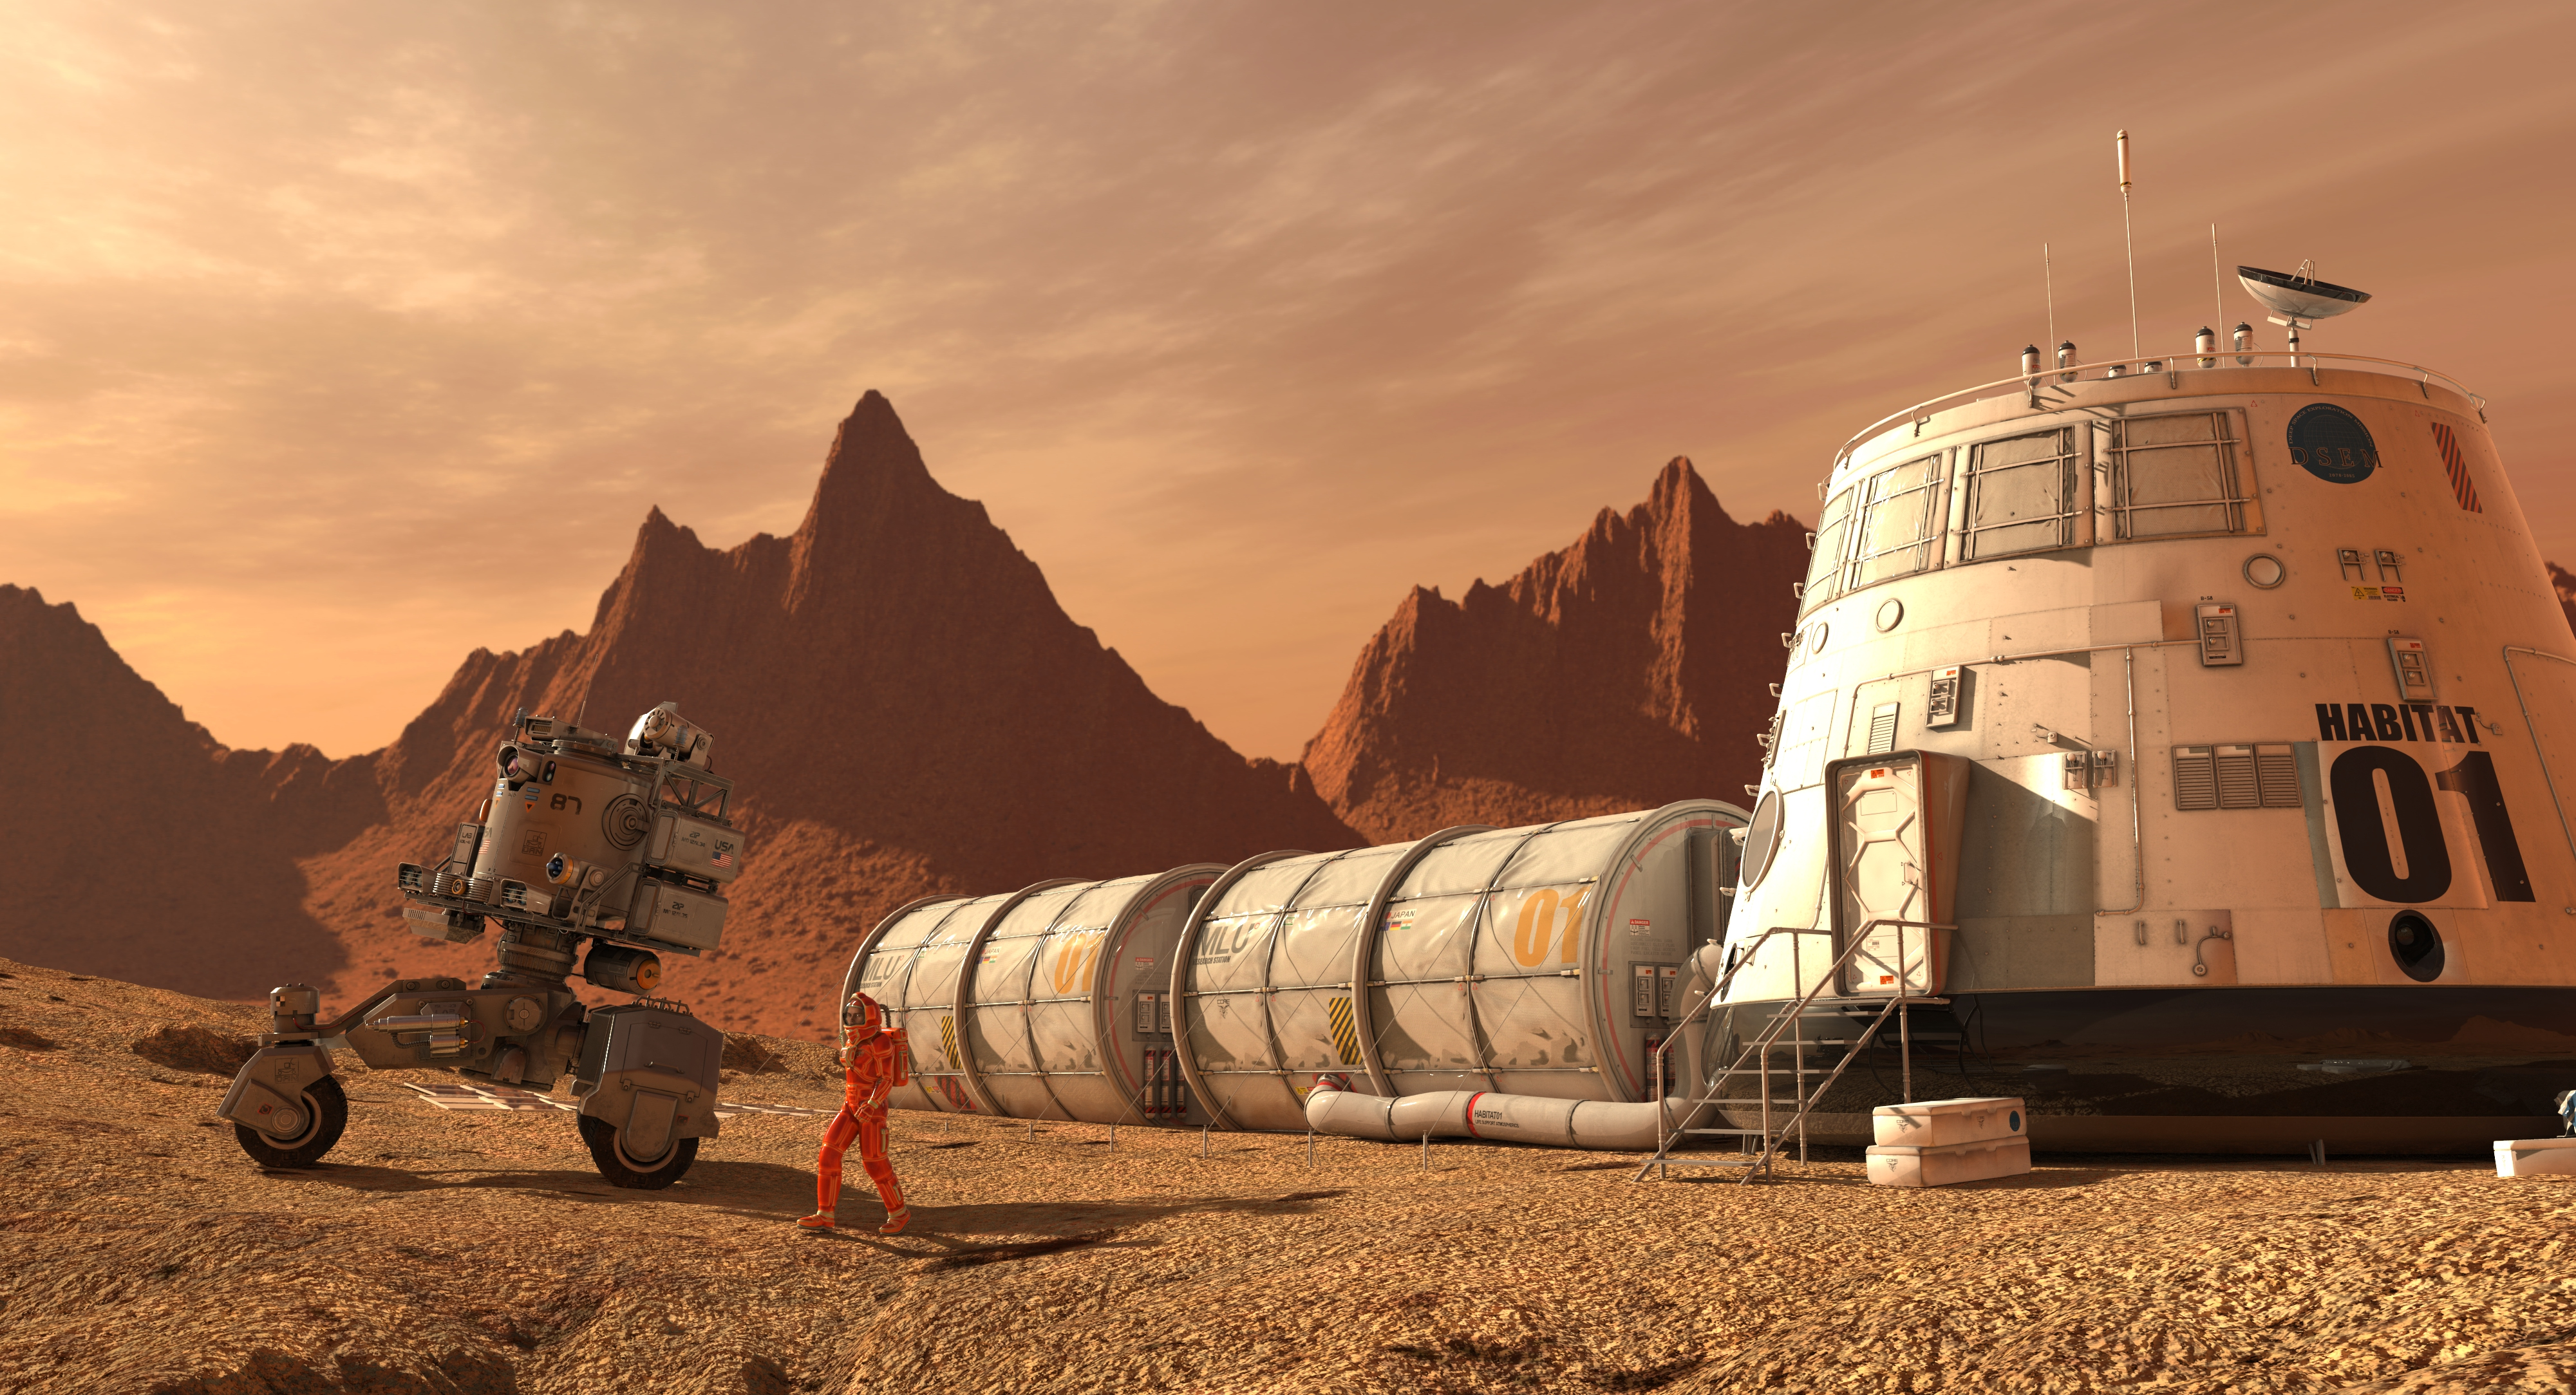 What it will take for humans to colonize the Moon and Mars